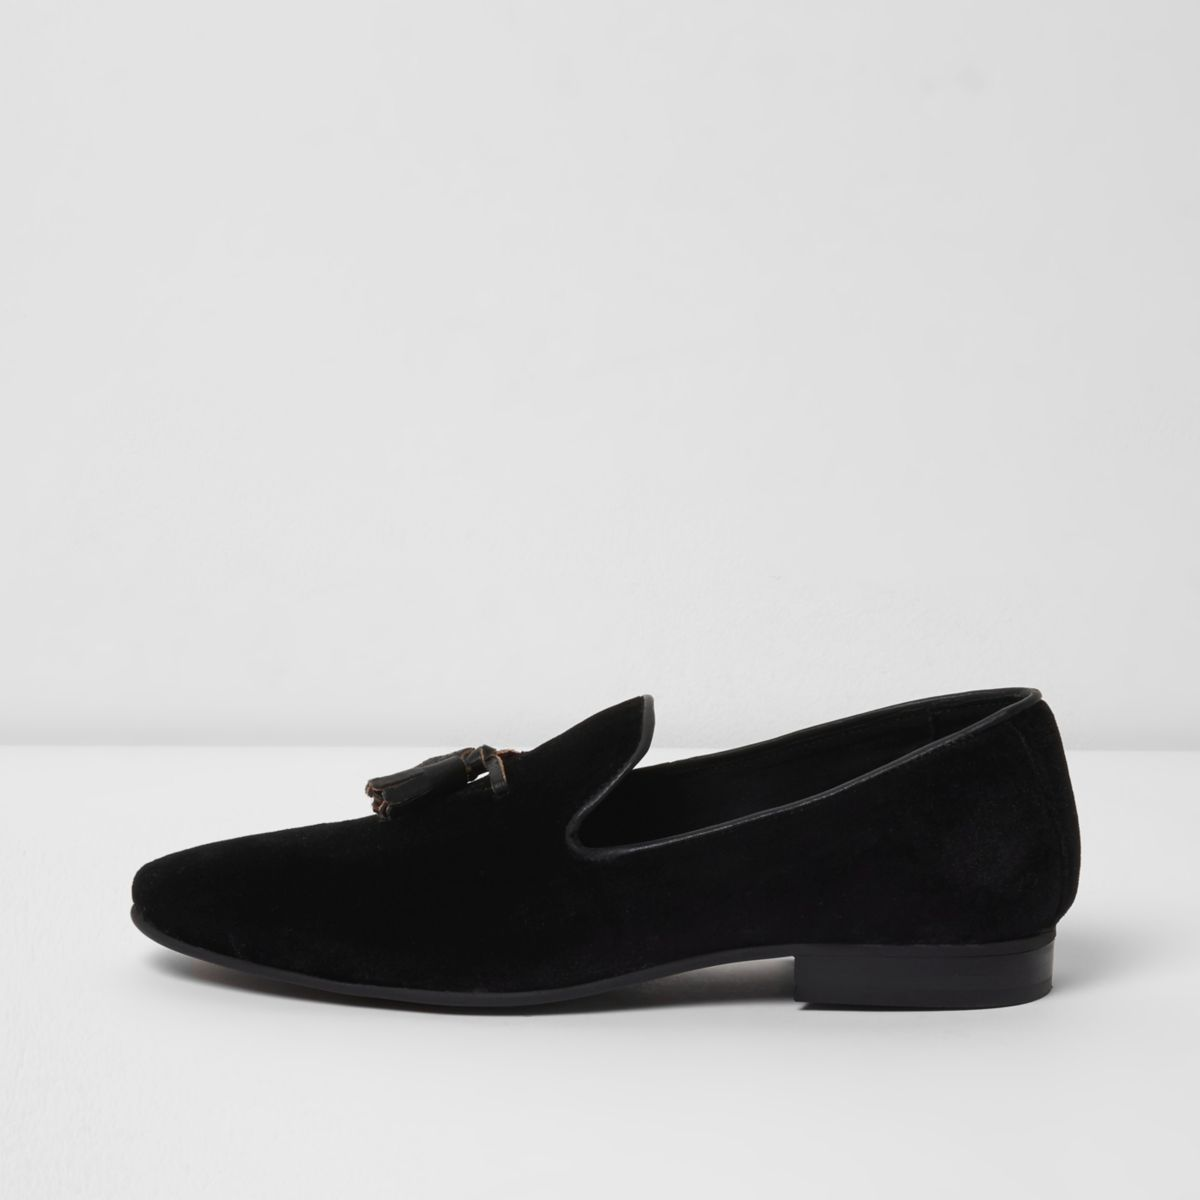 Black velvet tassel loafers